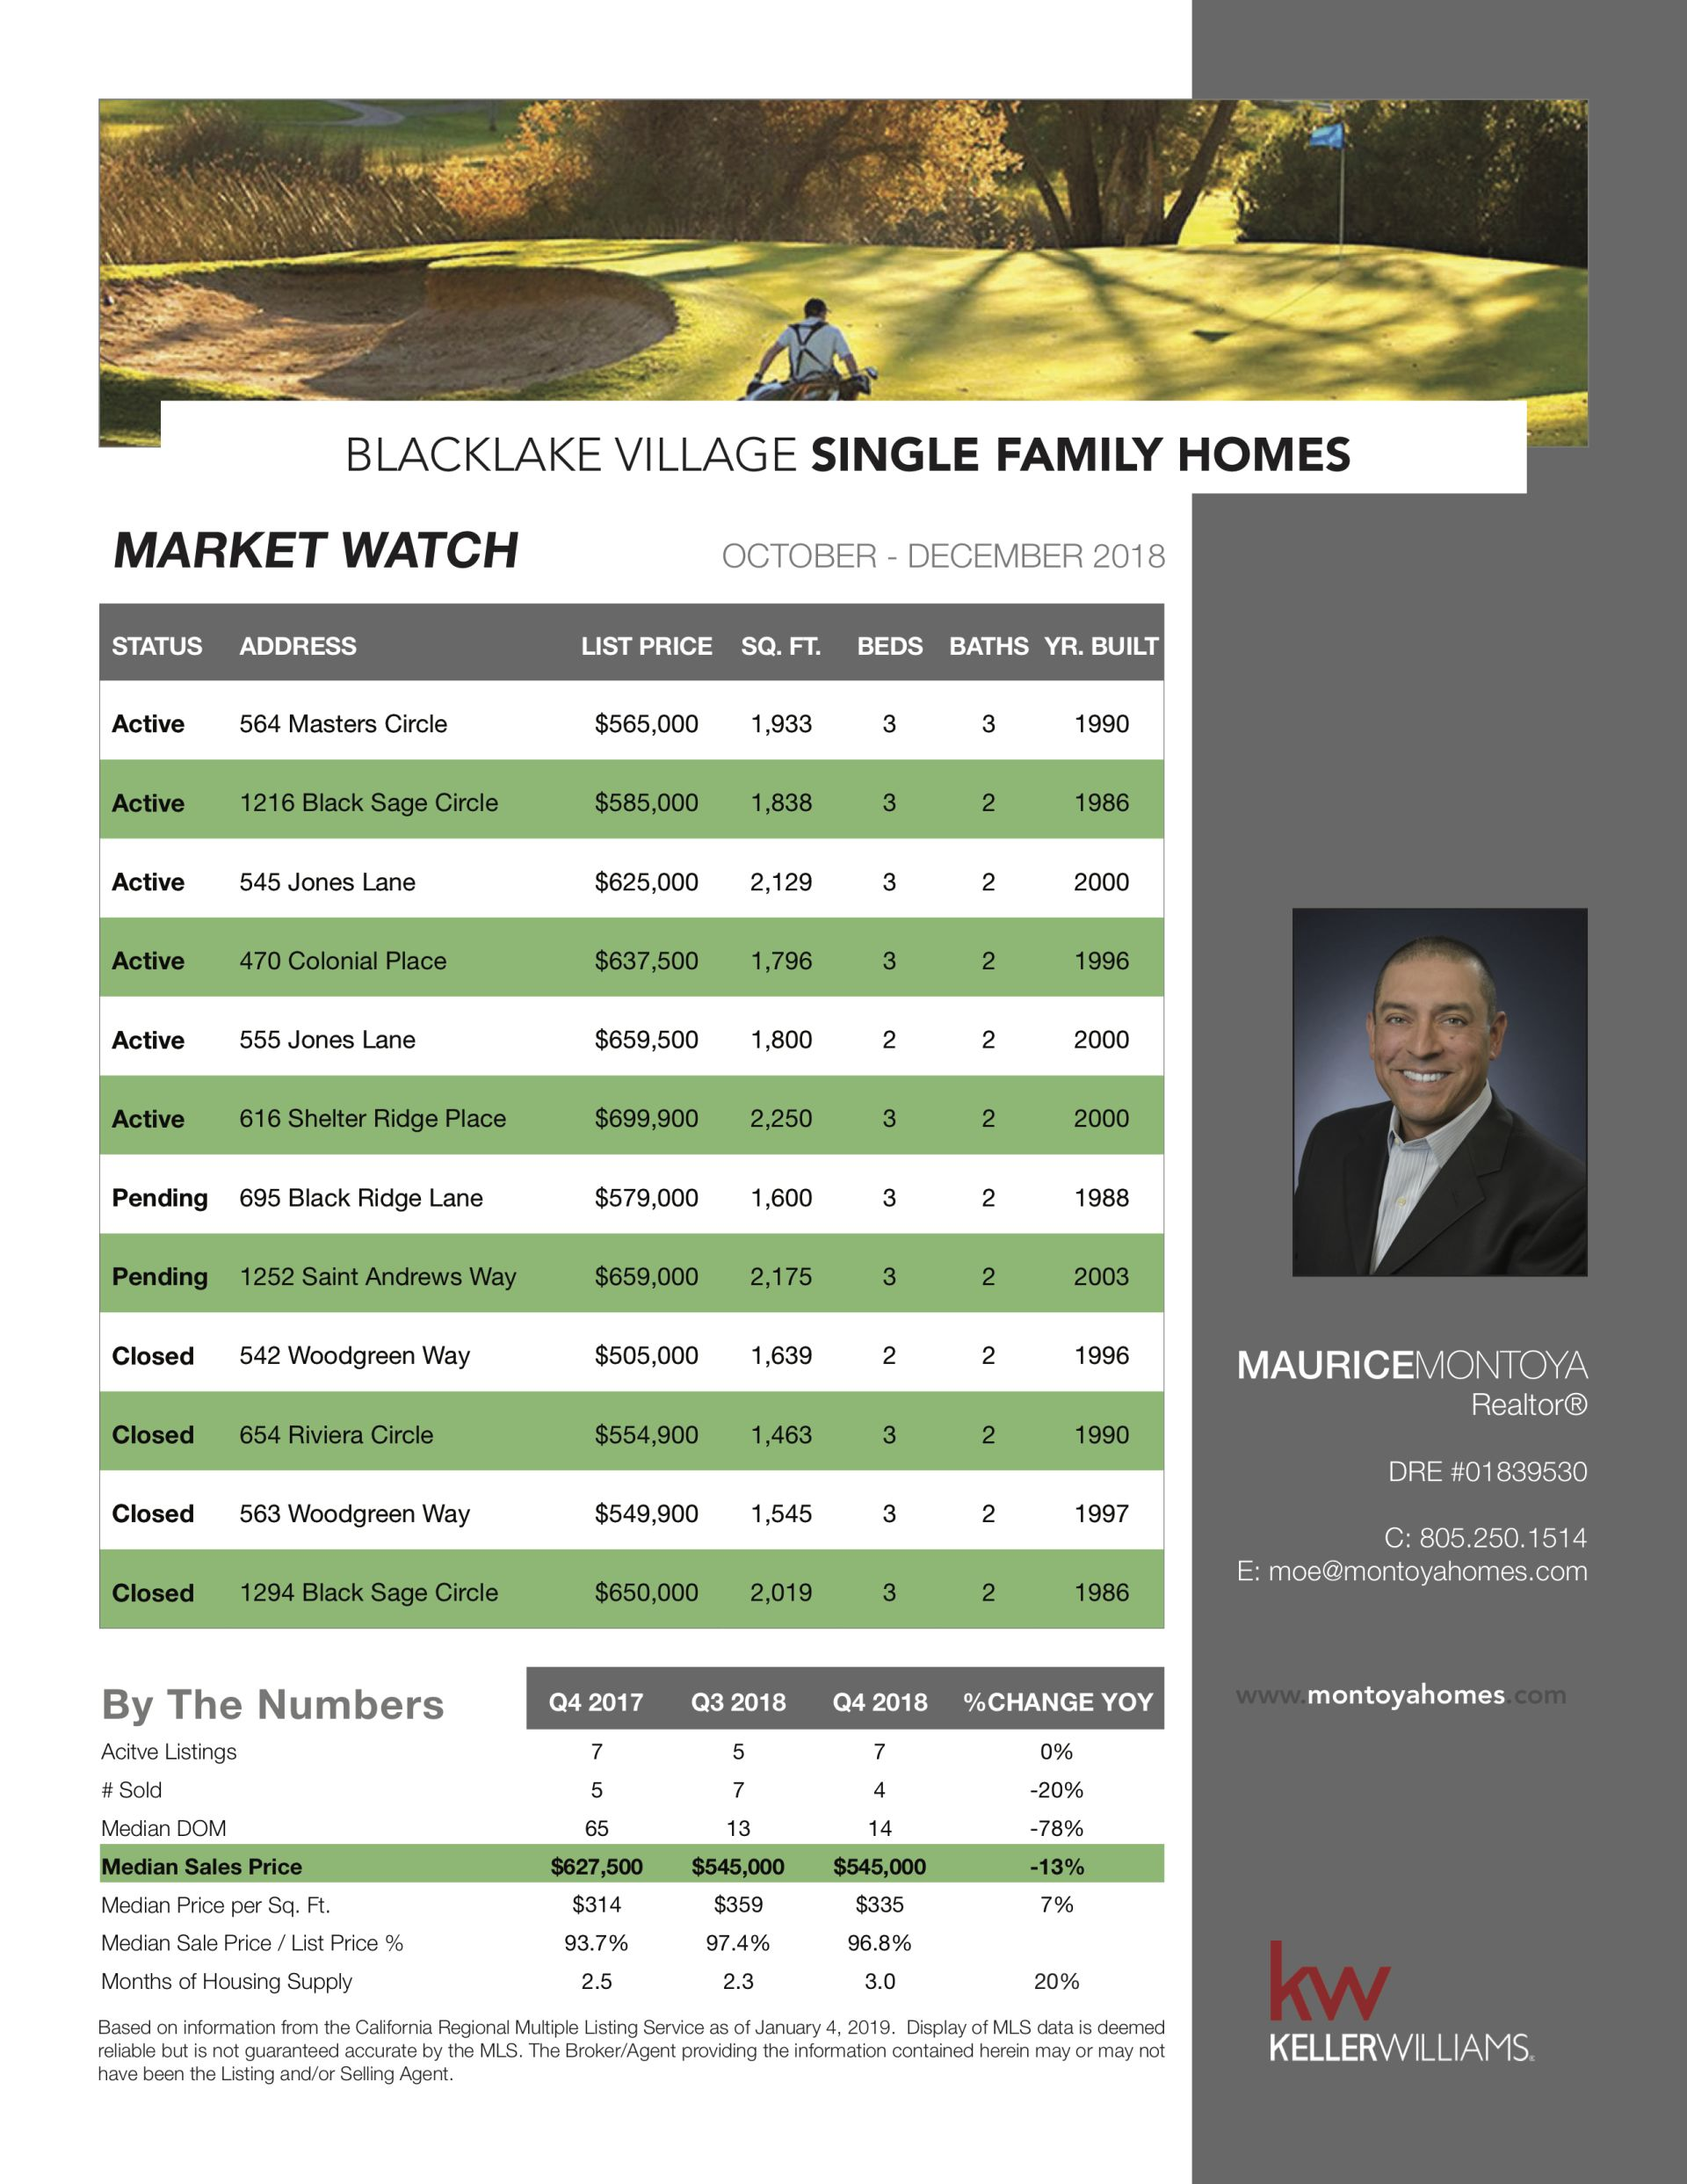 Blacklake Village: Market Watch – January 2019